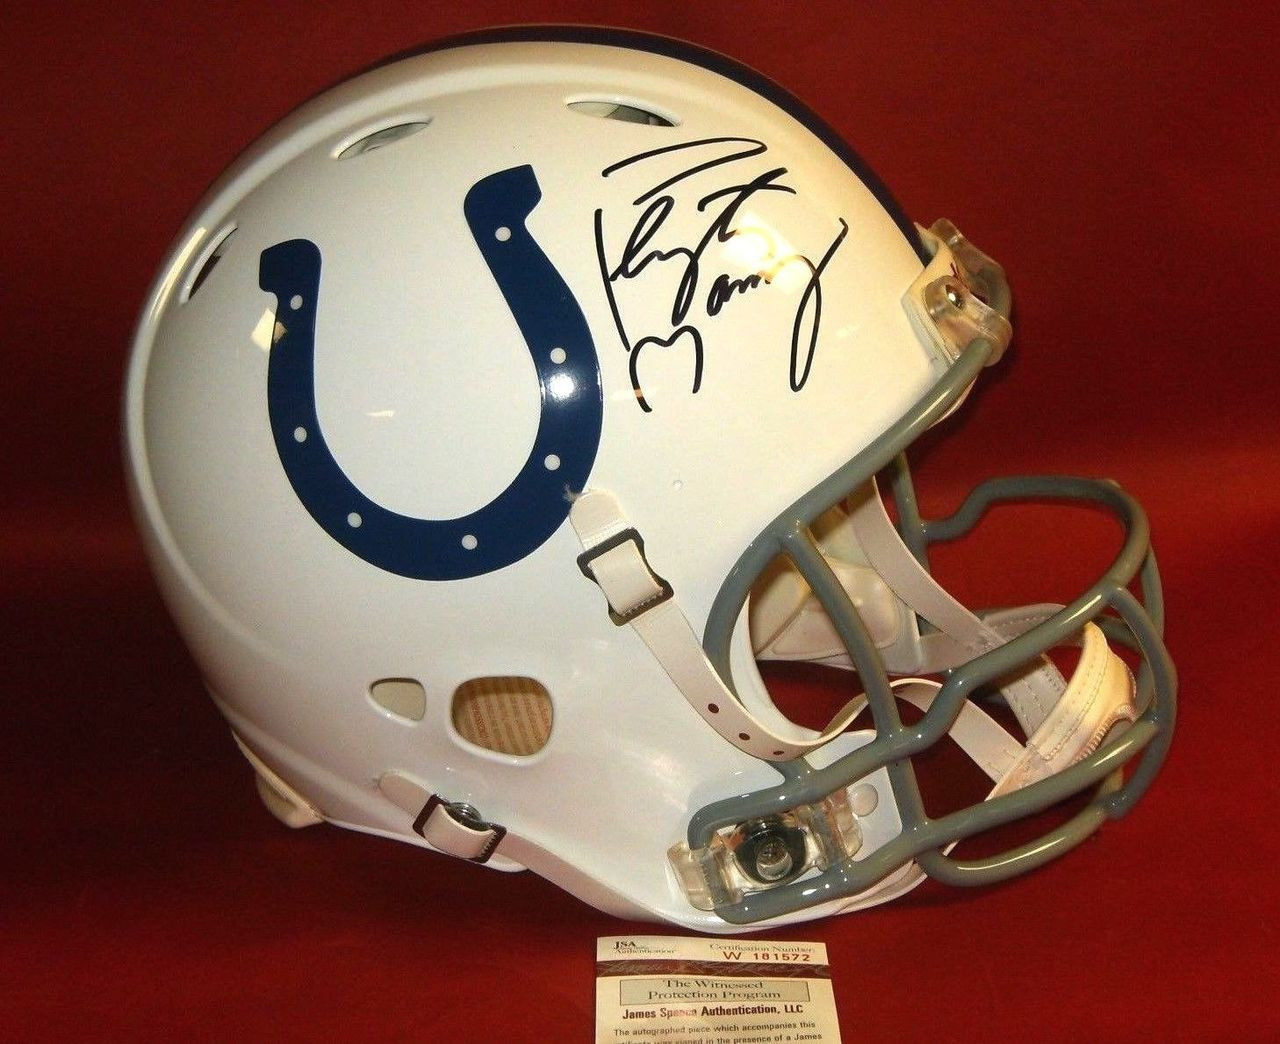 54a24e793bf PEYTON MANNING AUTOGRAPHED INDIANAPOLIS COLTS FS AUTHENTIC REVOLUTION  HELMET JSA - All American Sports House